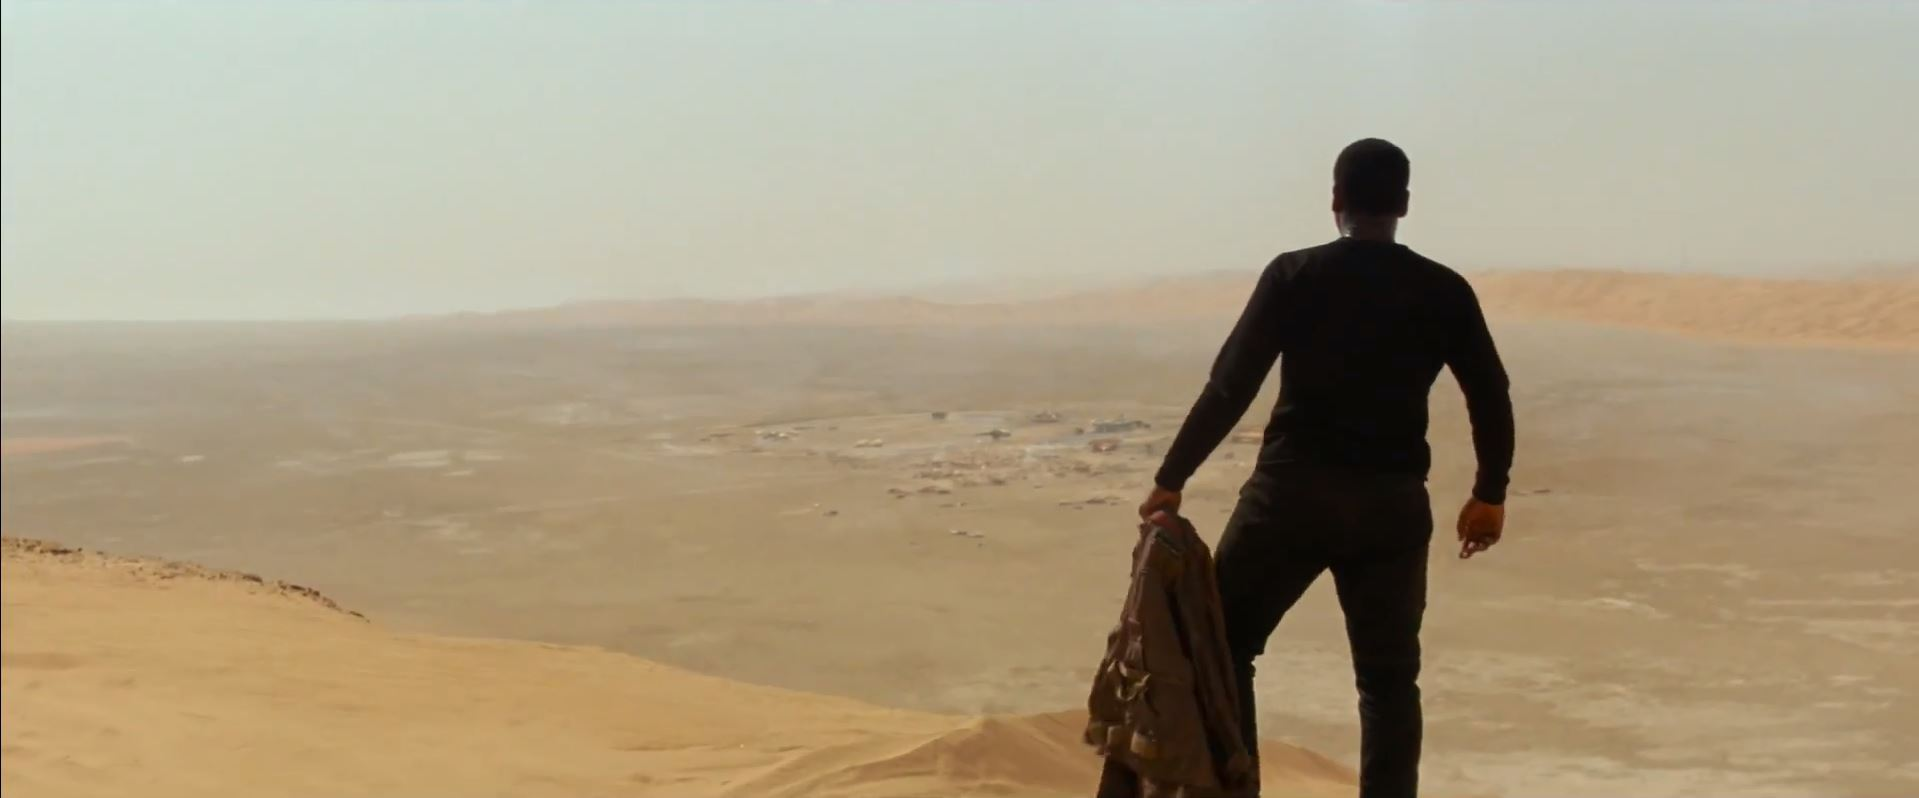 Finn (John Boyega) lands on Jakku. The Force Awakens trailer released